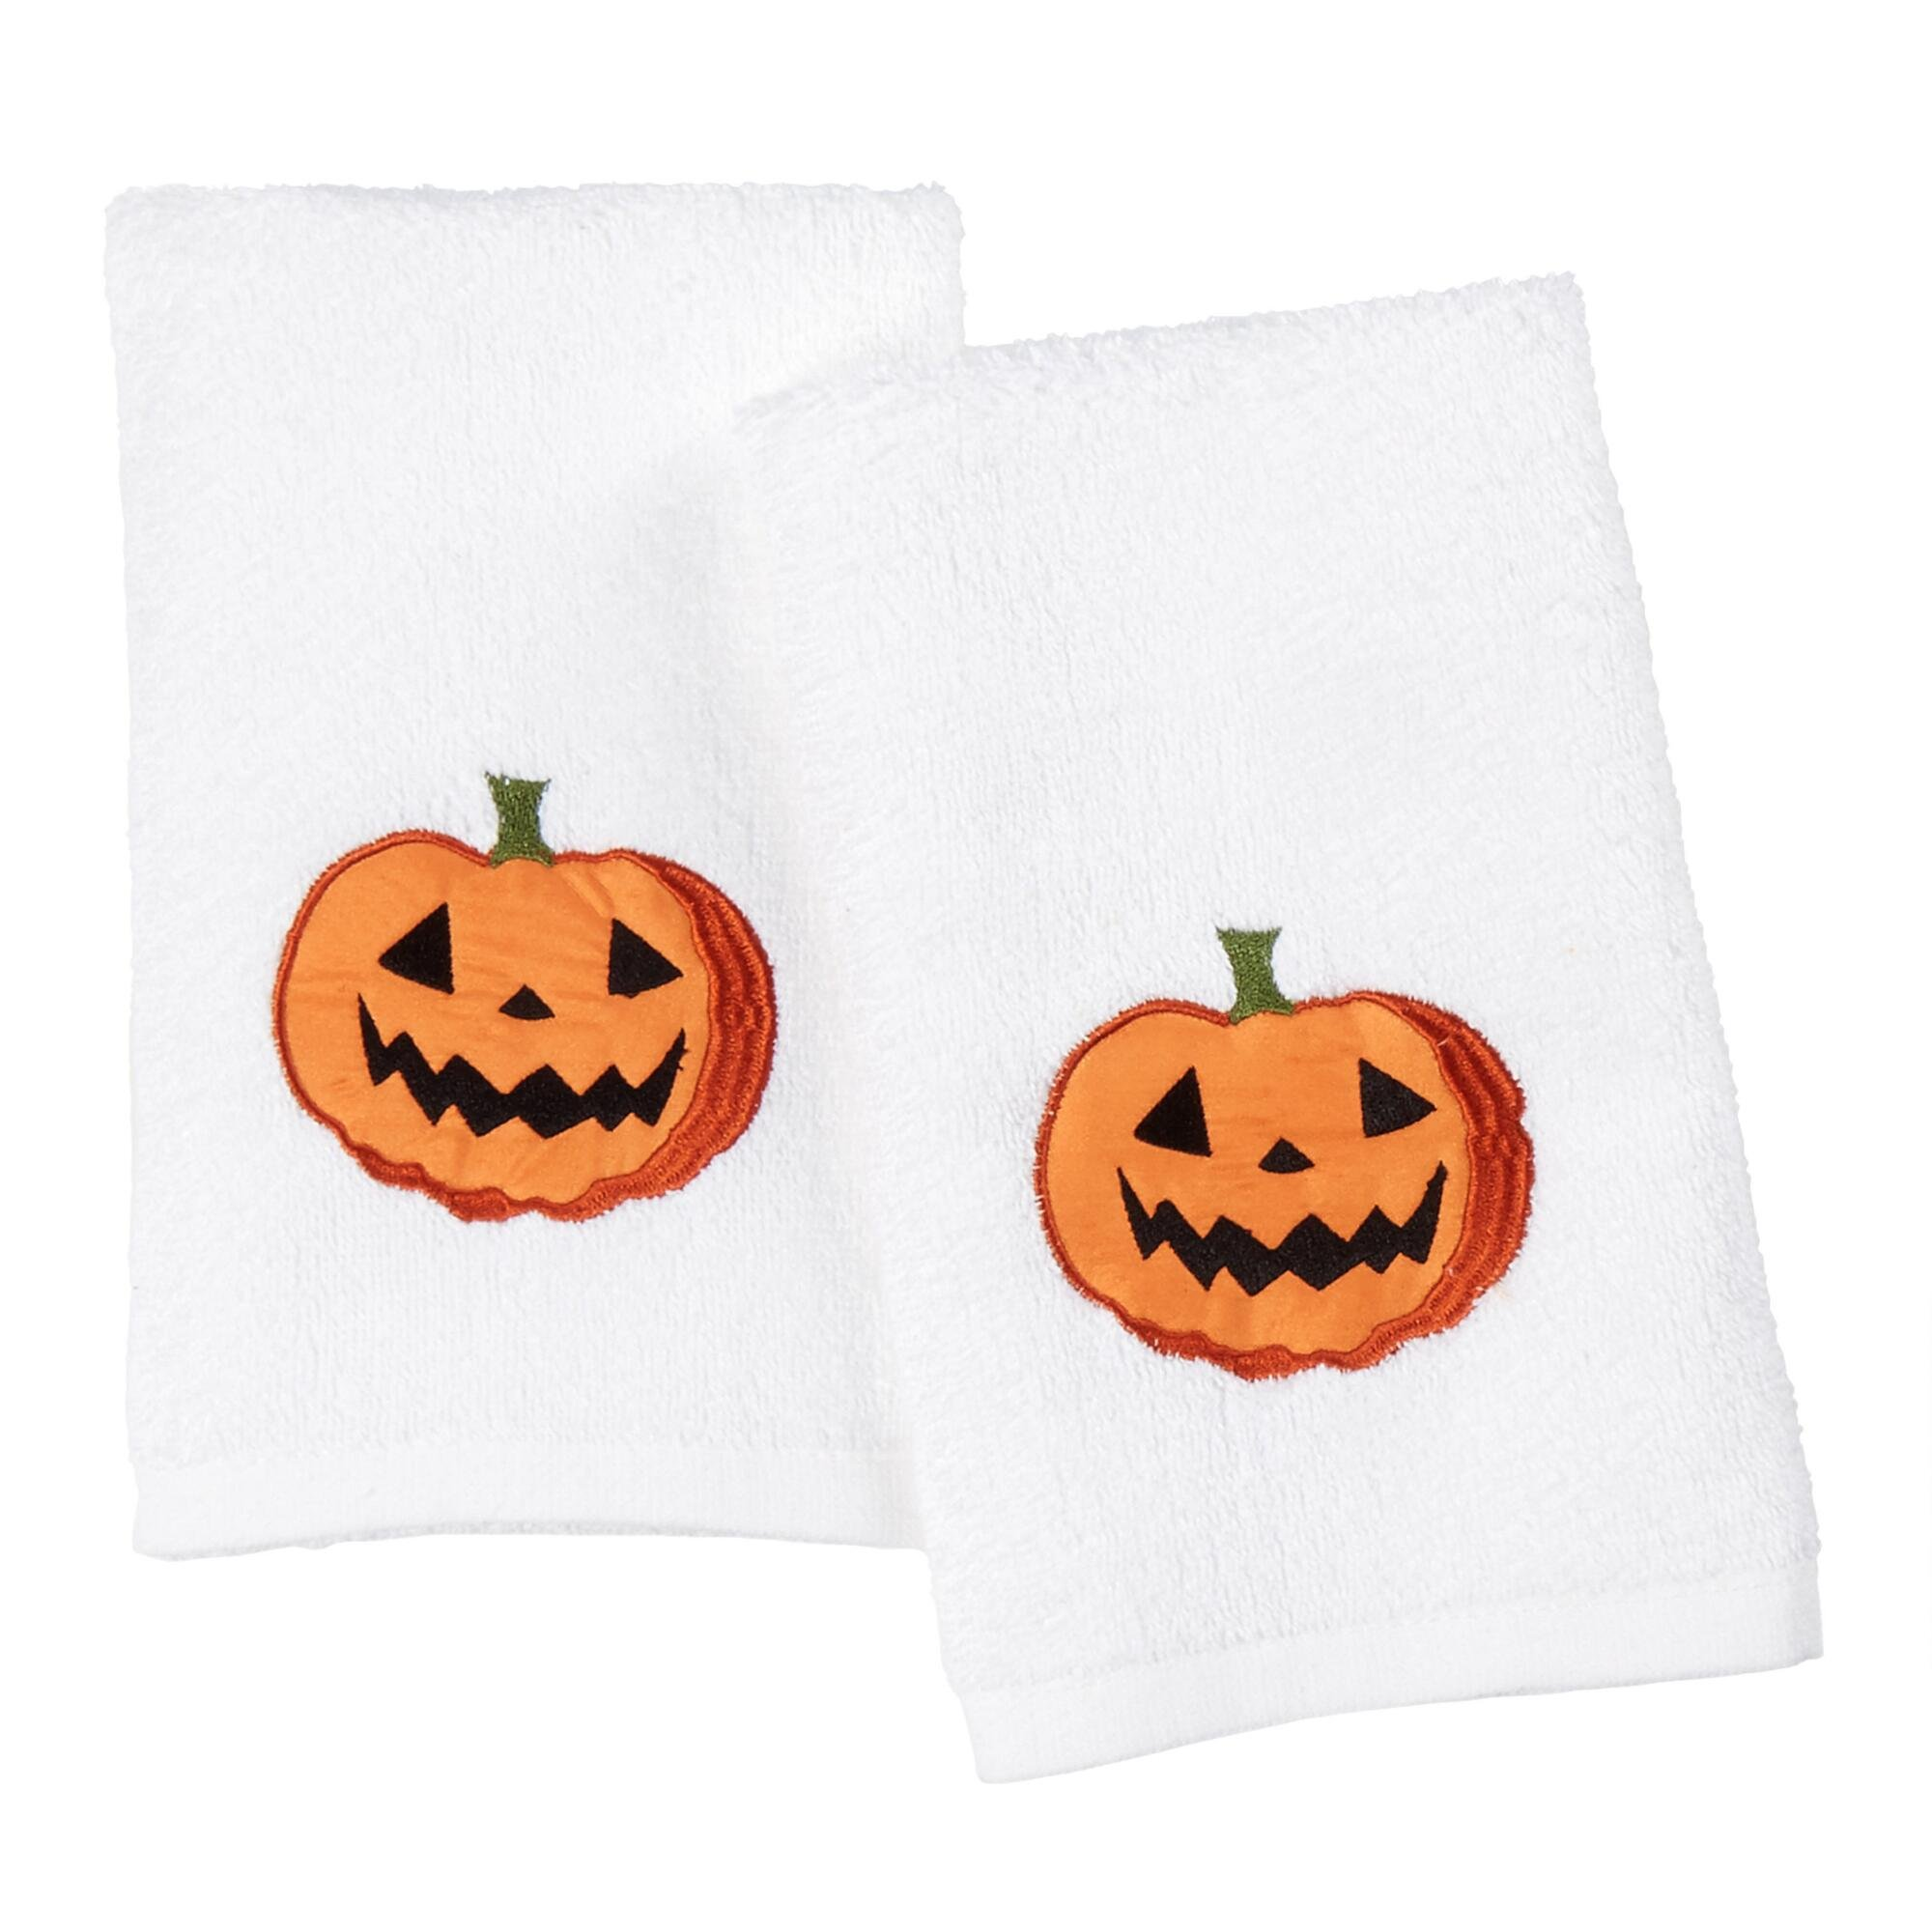 Luxury Soft and Absorbent 100% Cotton Guest Hand Towels: Embroidered Jack O Lantern Pumpkins, White Orange Black , Set of 2, 16'' by 25'' Inches